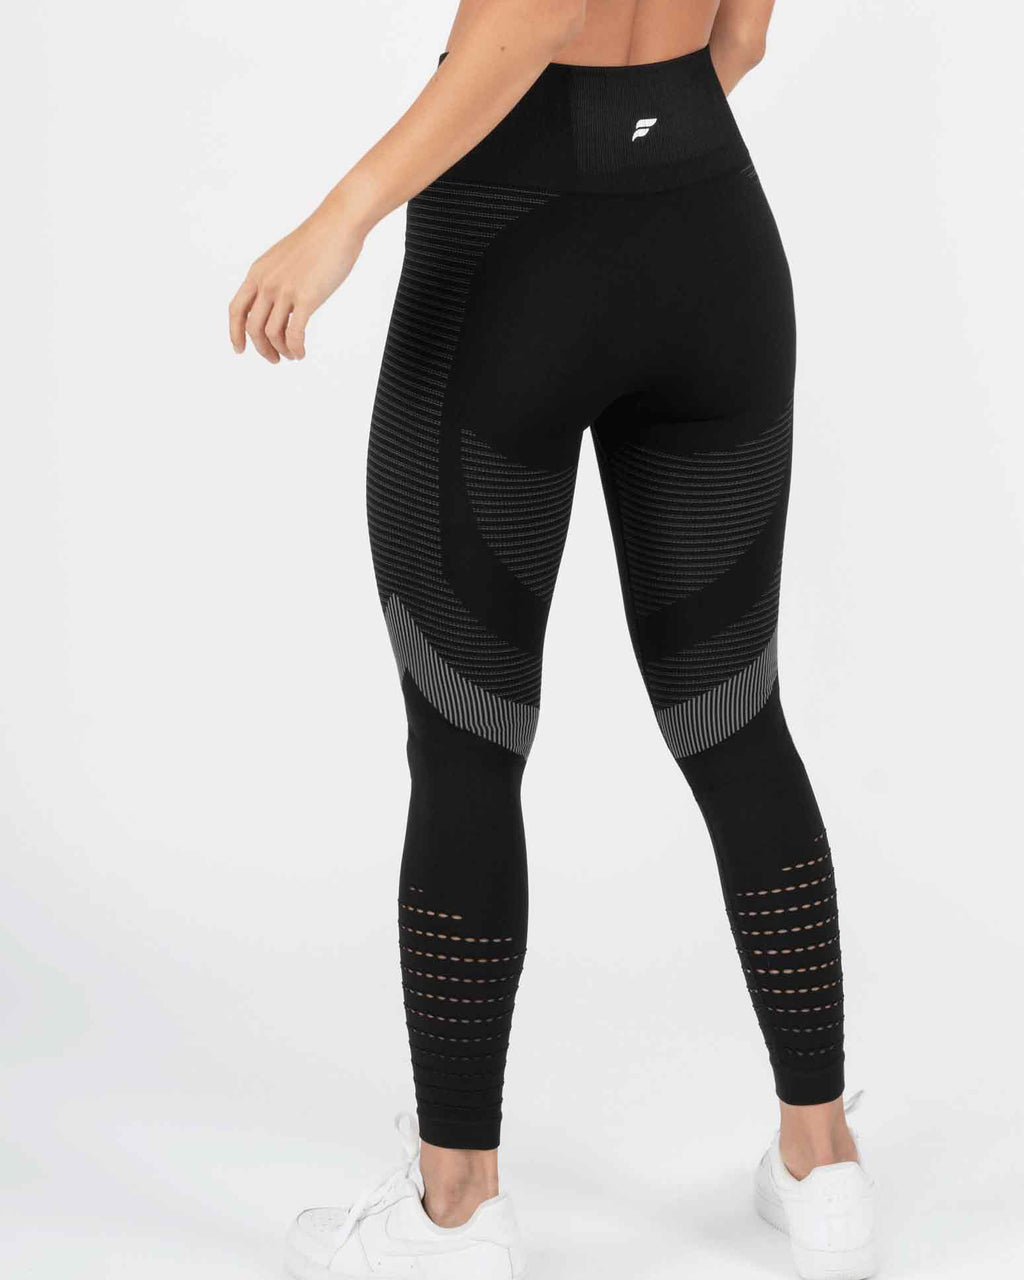 Ultimate Performance Leggings